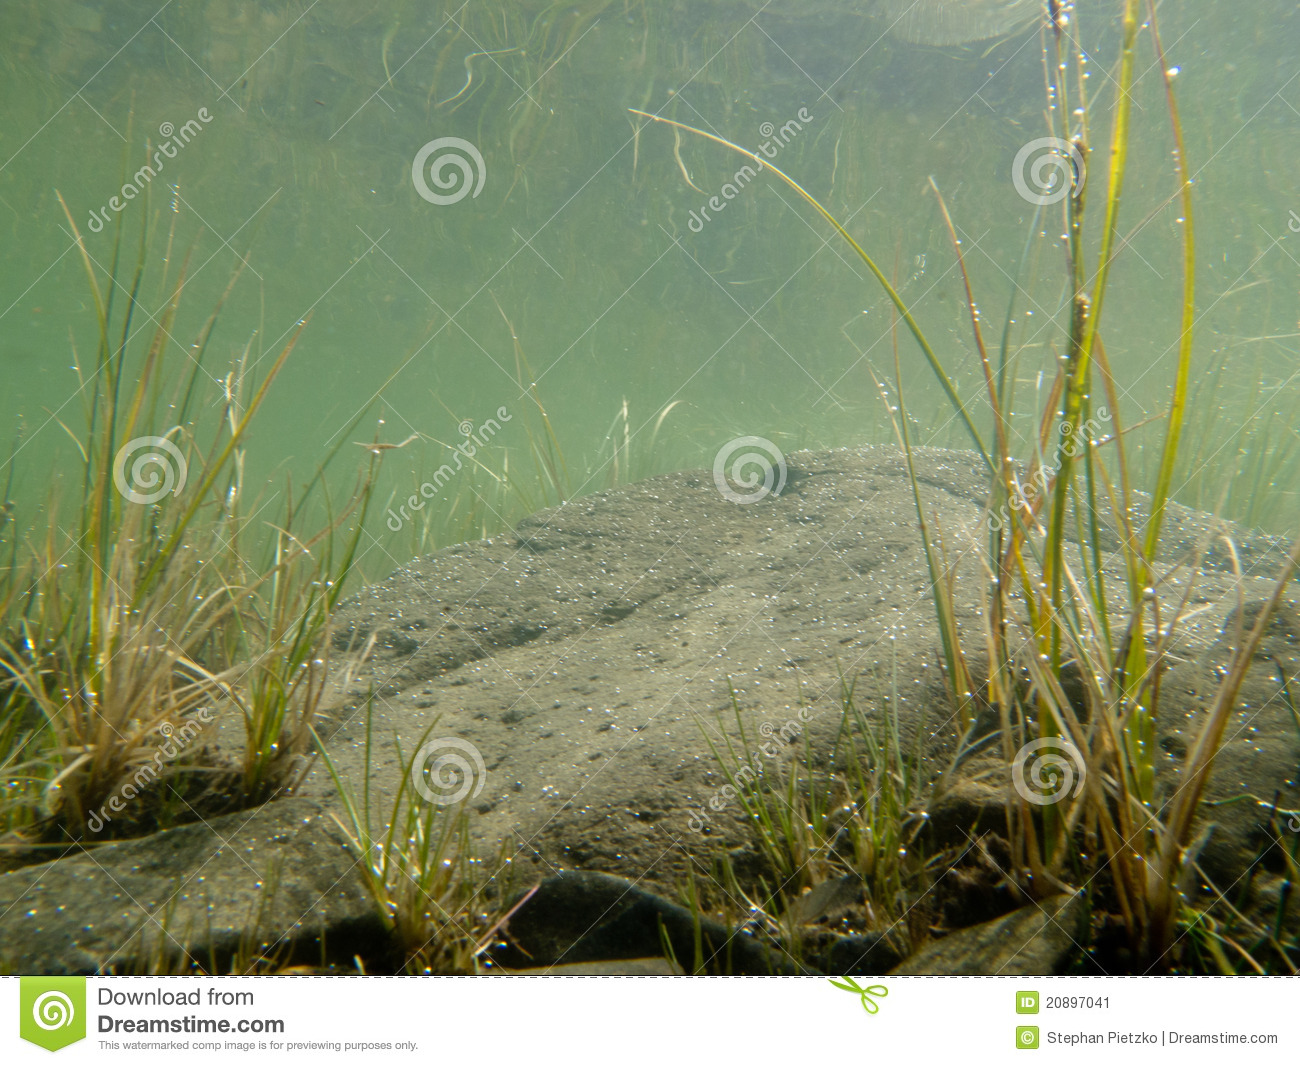 Underwater Shot Of Submerged Grass And Plants Stock Image